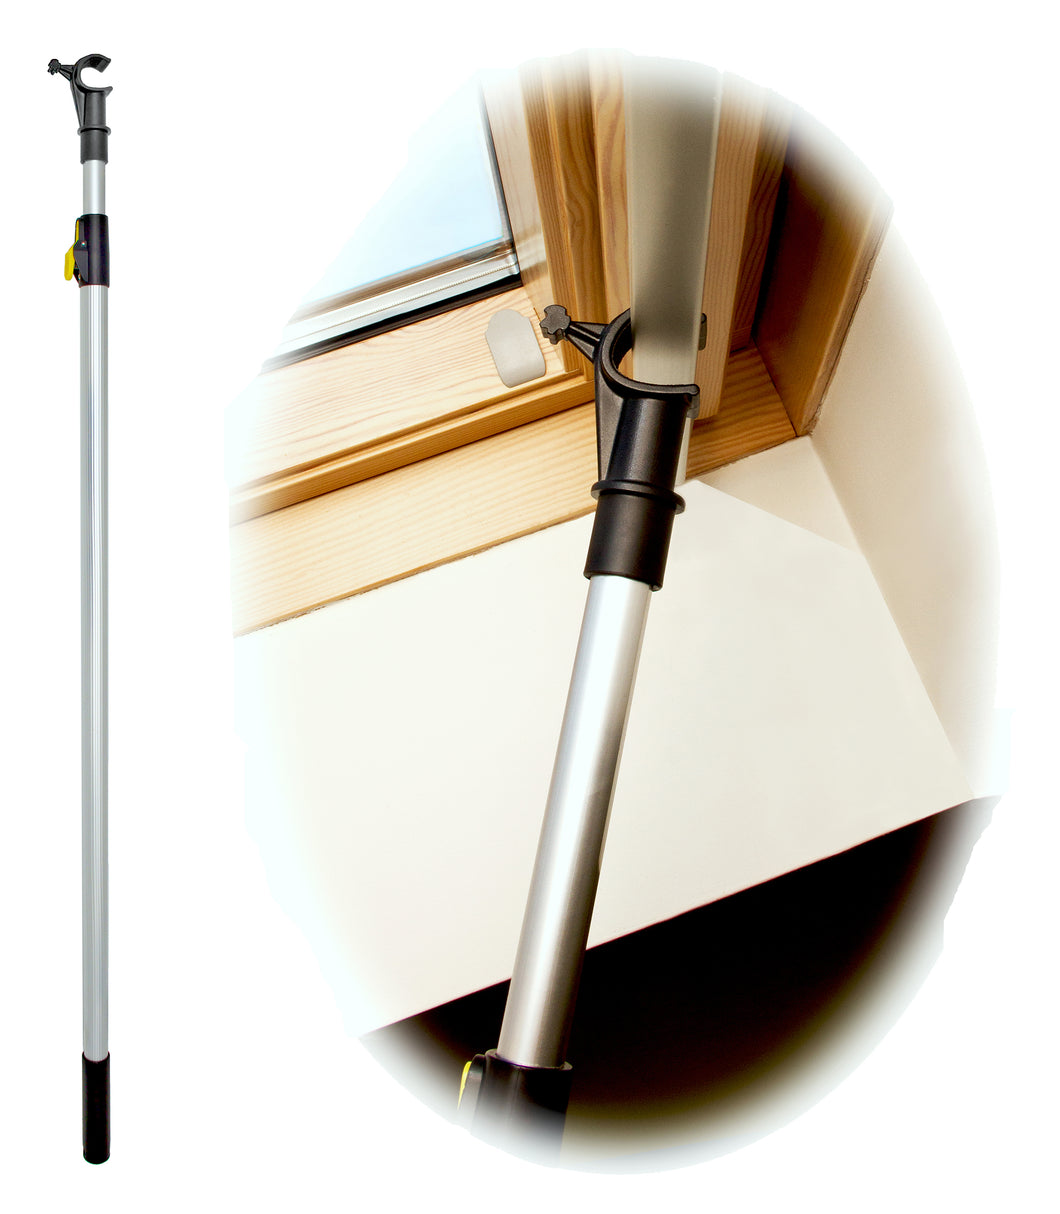 WinHux Window Pole 1.2-2.0 metre Silver  (Only available via Amazon - Contact us for Bulk orders)